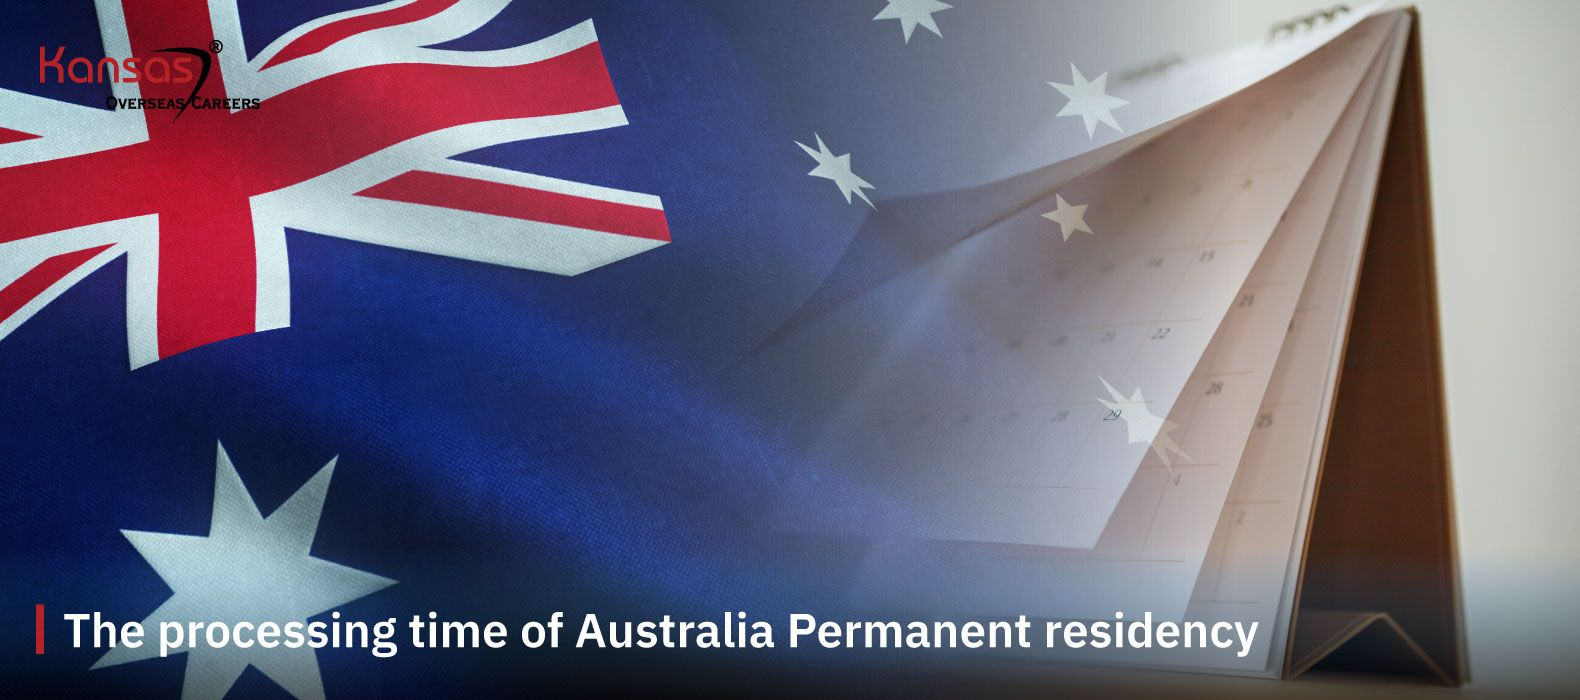 the-processing-time-of-Australia-Permanent-residency